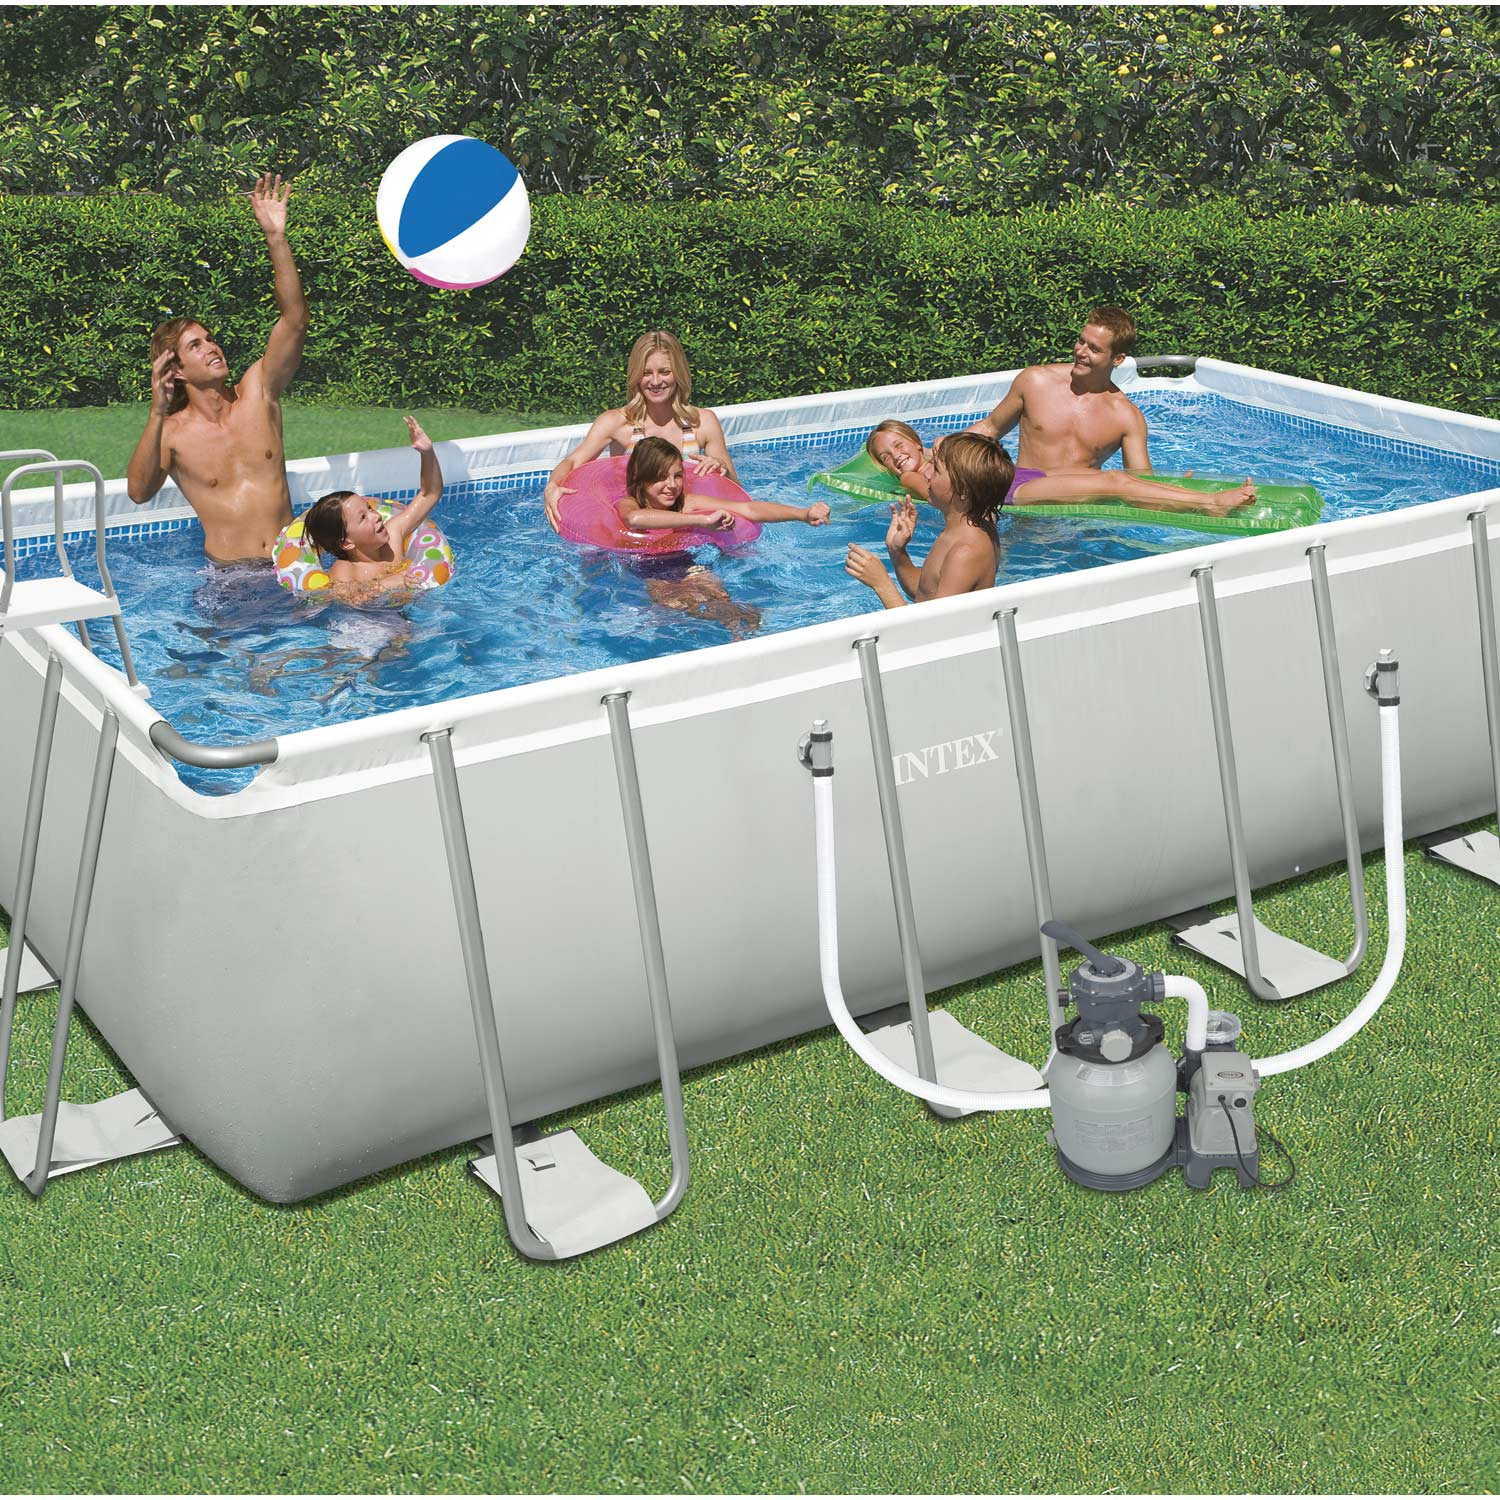 Piscine hors sol autoportante tubulaire ultra silver intex for Piscine hors sol 4mx3m